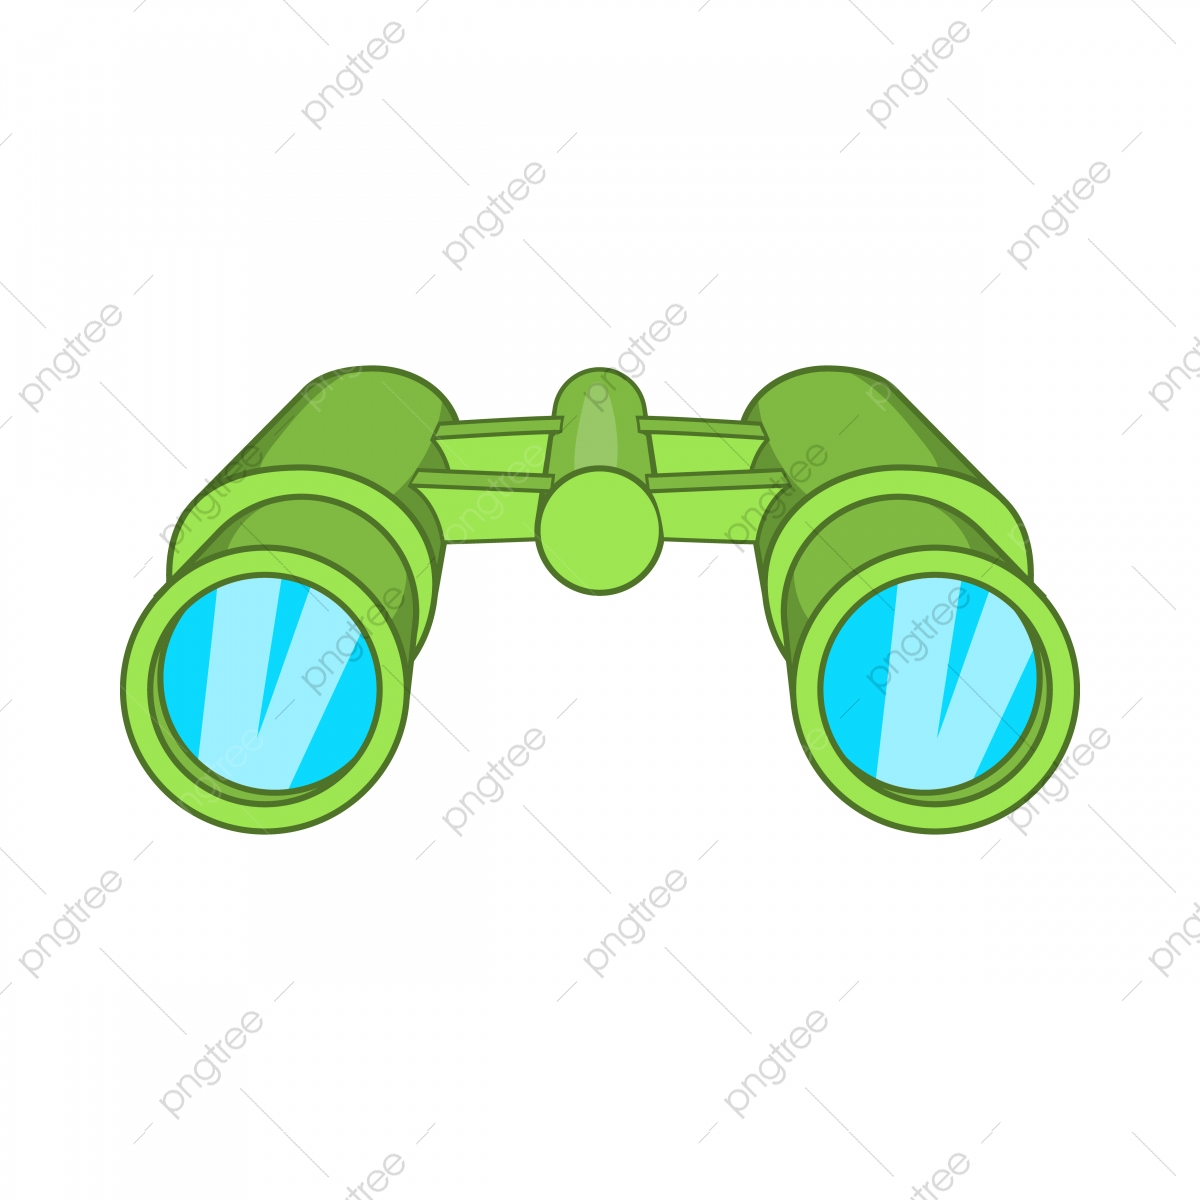 Binoculars Icon In Cartoon Style Style Icons Cartoon Icons Binoculars Icons Png And Vector With Transparent Background For Free Download